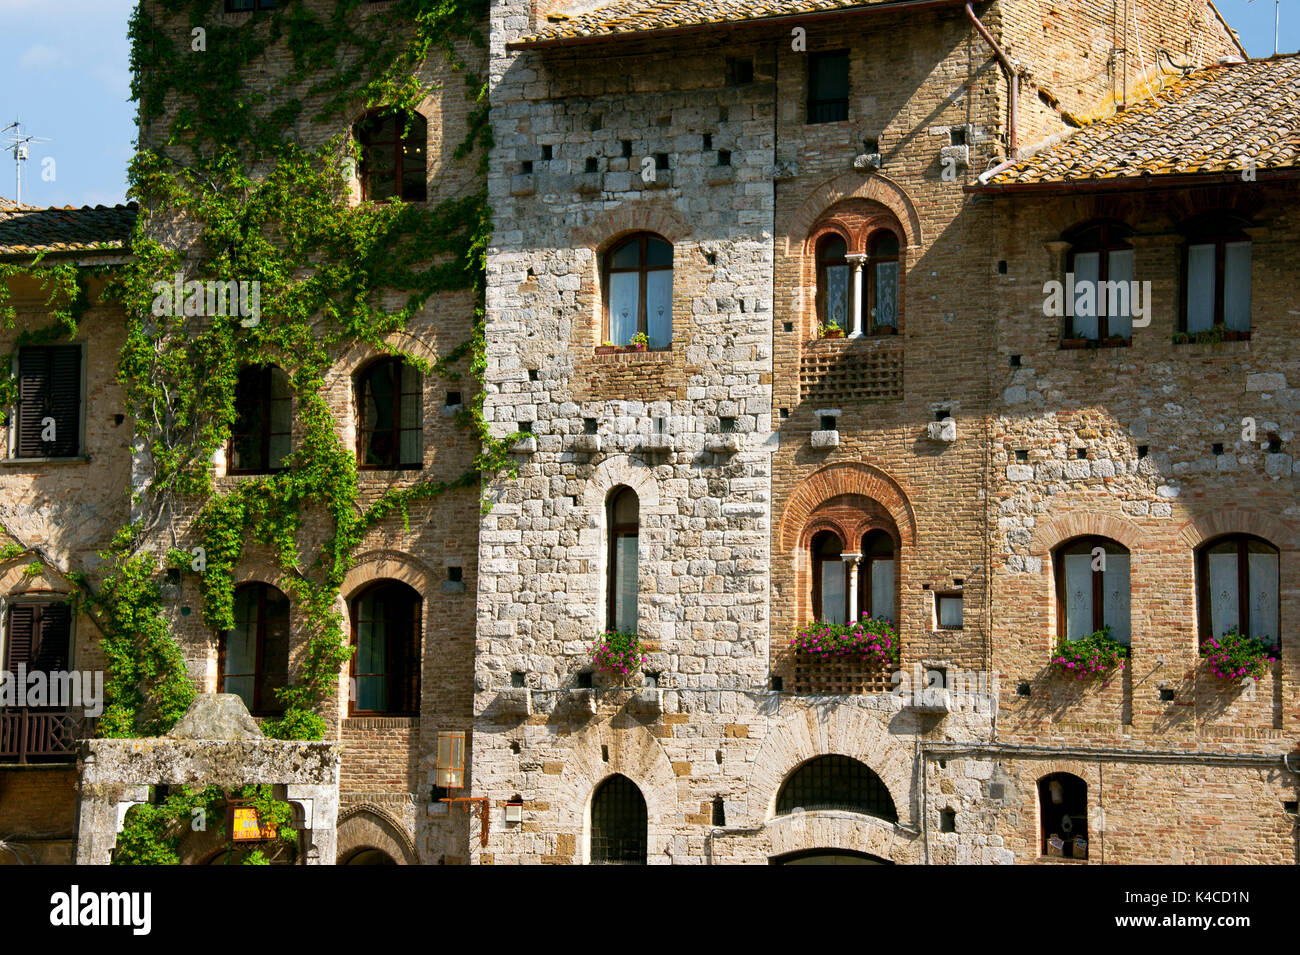 San Gimignano, Town And Tower House Of The Middle Ages, Tuscany, Italy - Stock Image